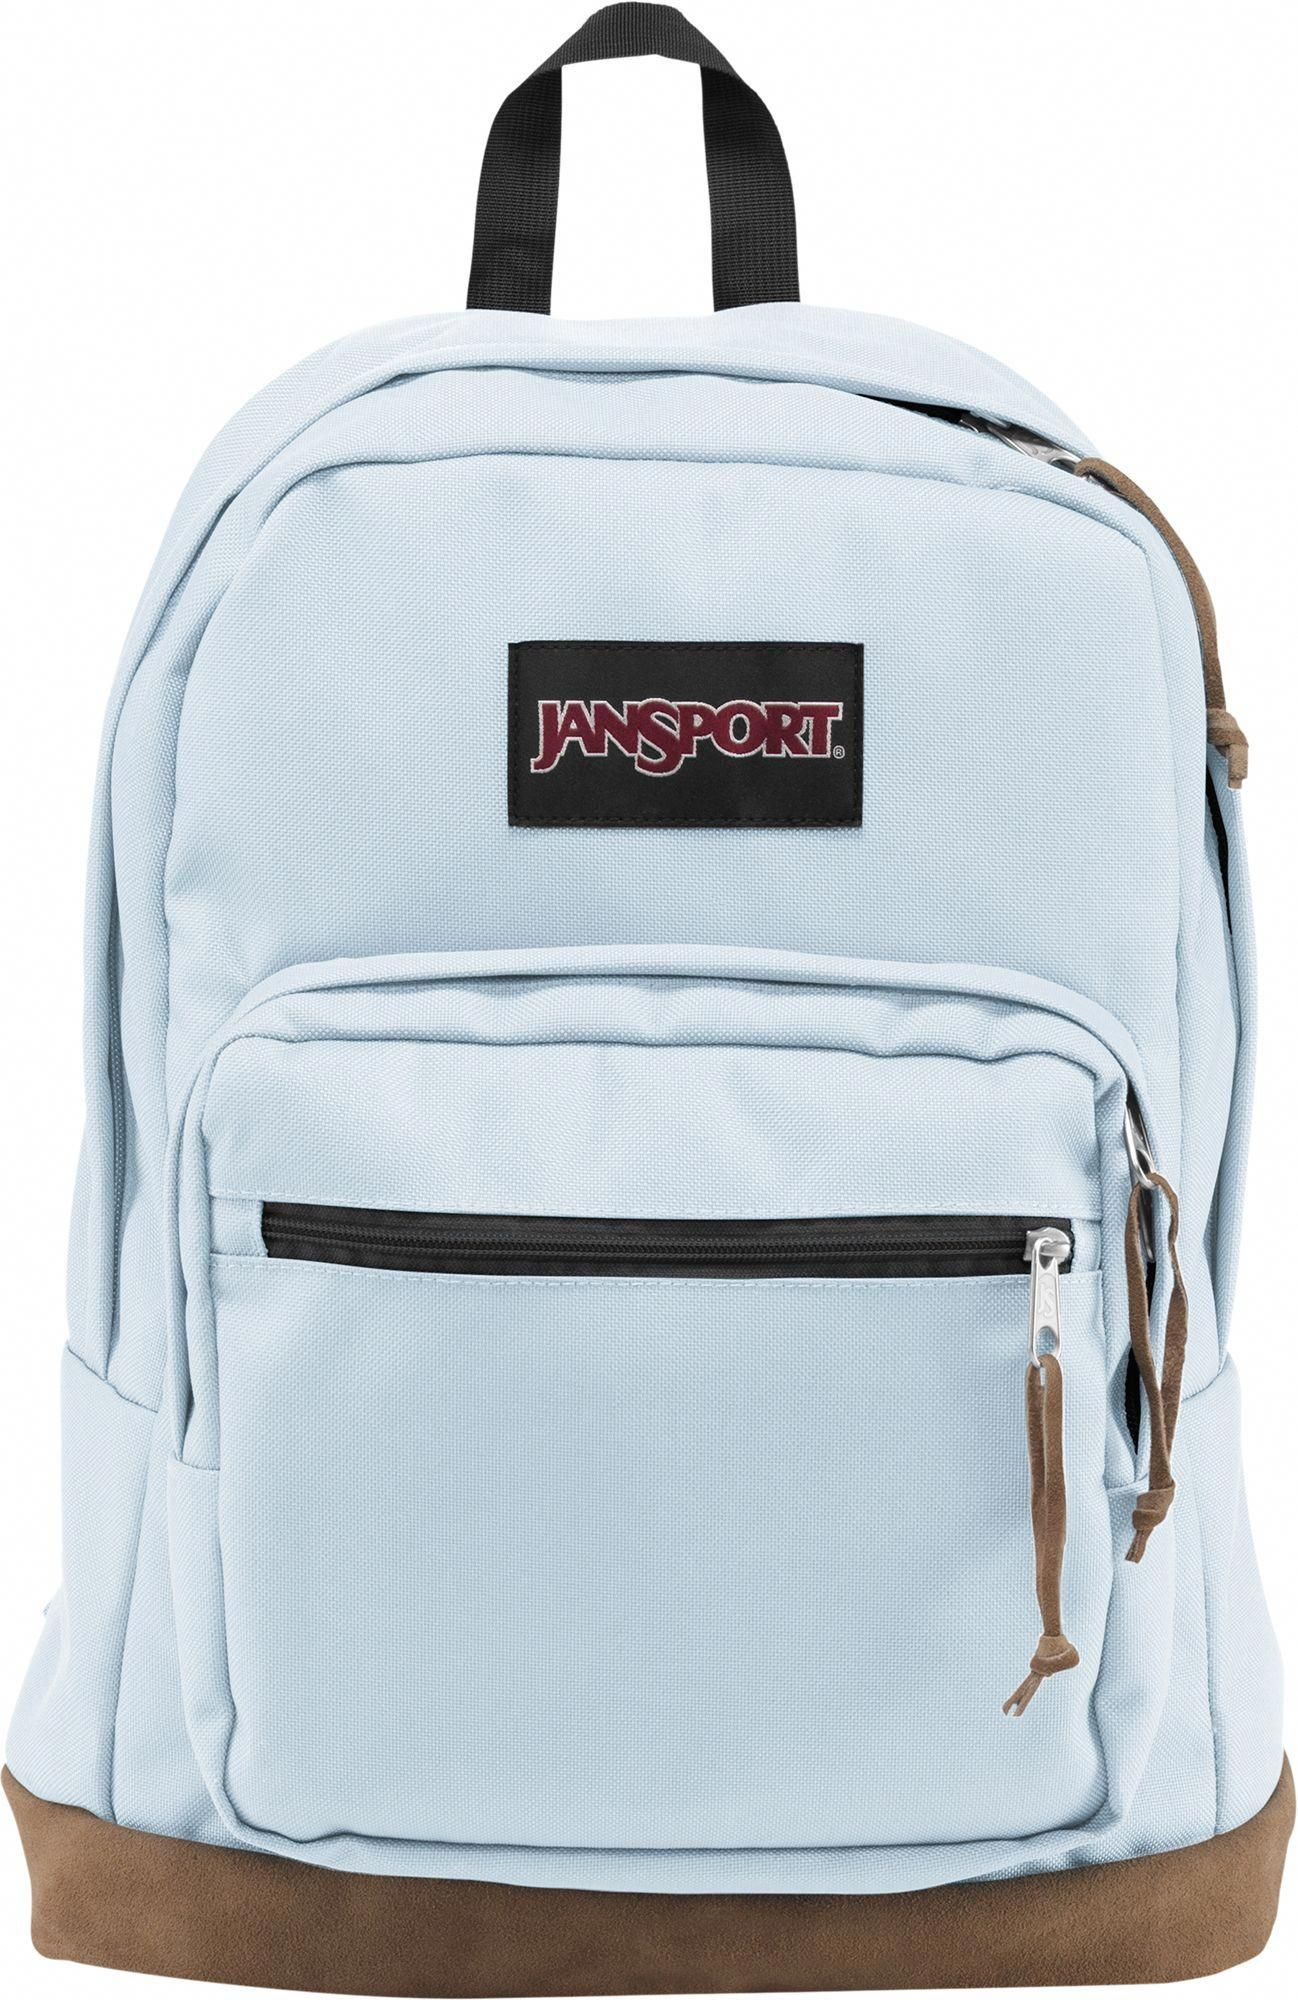 Laptop Cool Backpacks Laptopbackpacks In 2020 Jansport